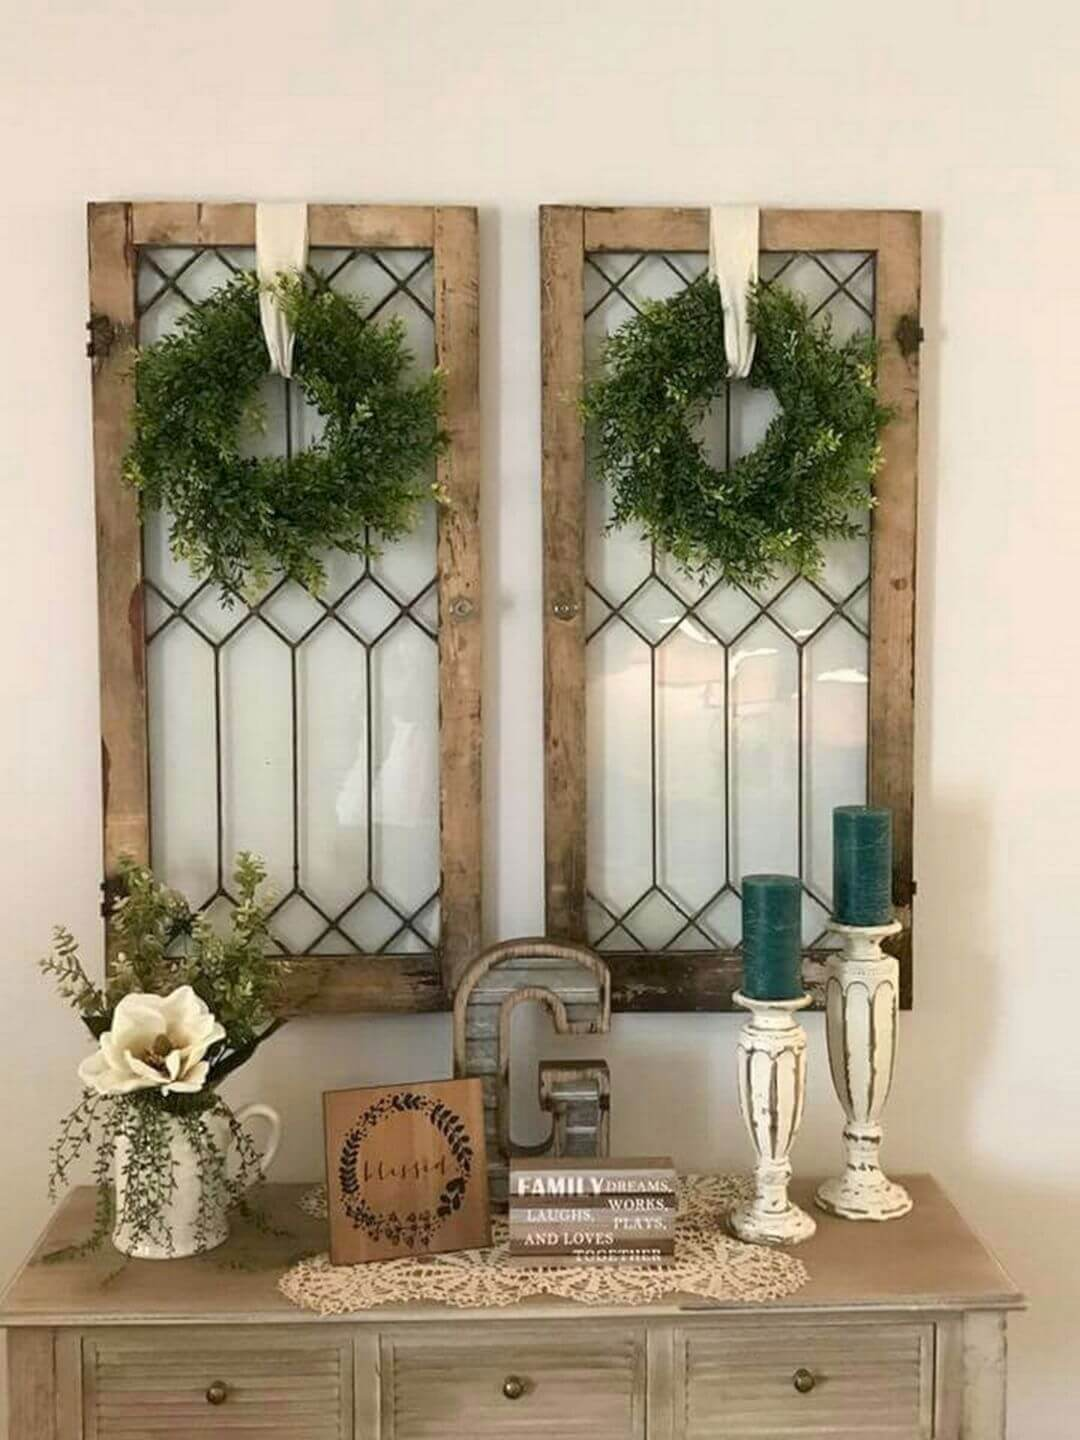 Twice the Impact with Matching Antique Windows